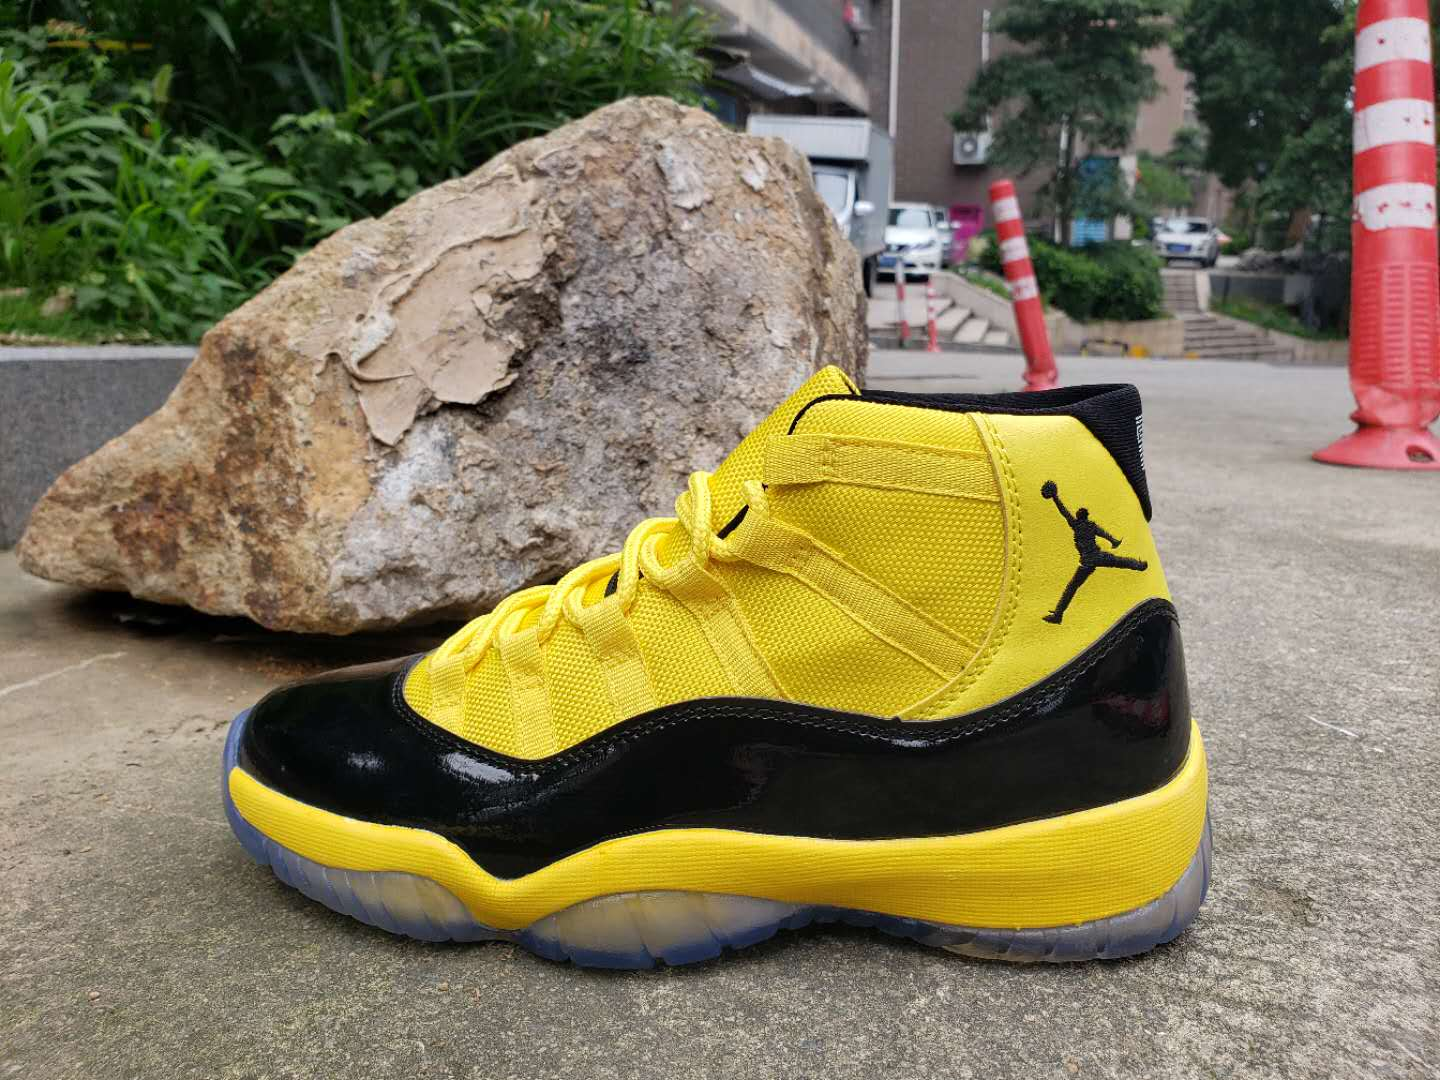 2019 Air Jordan 11 Retro Bumblebee